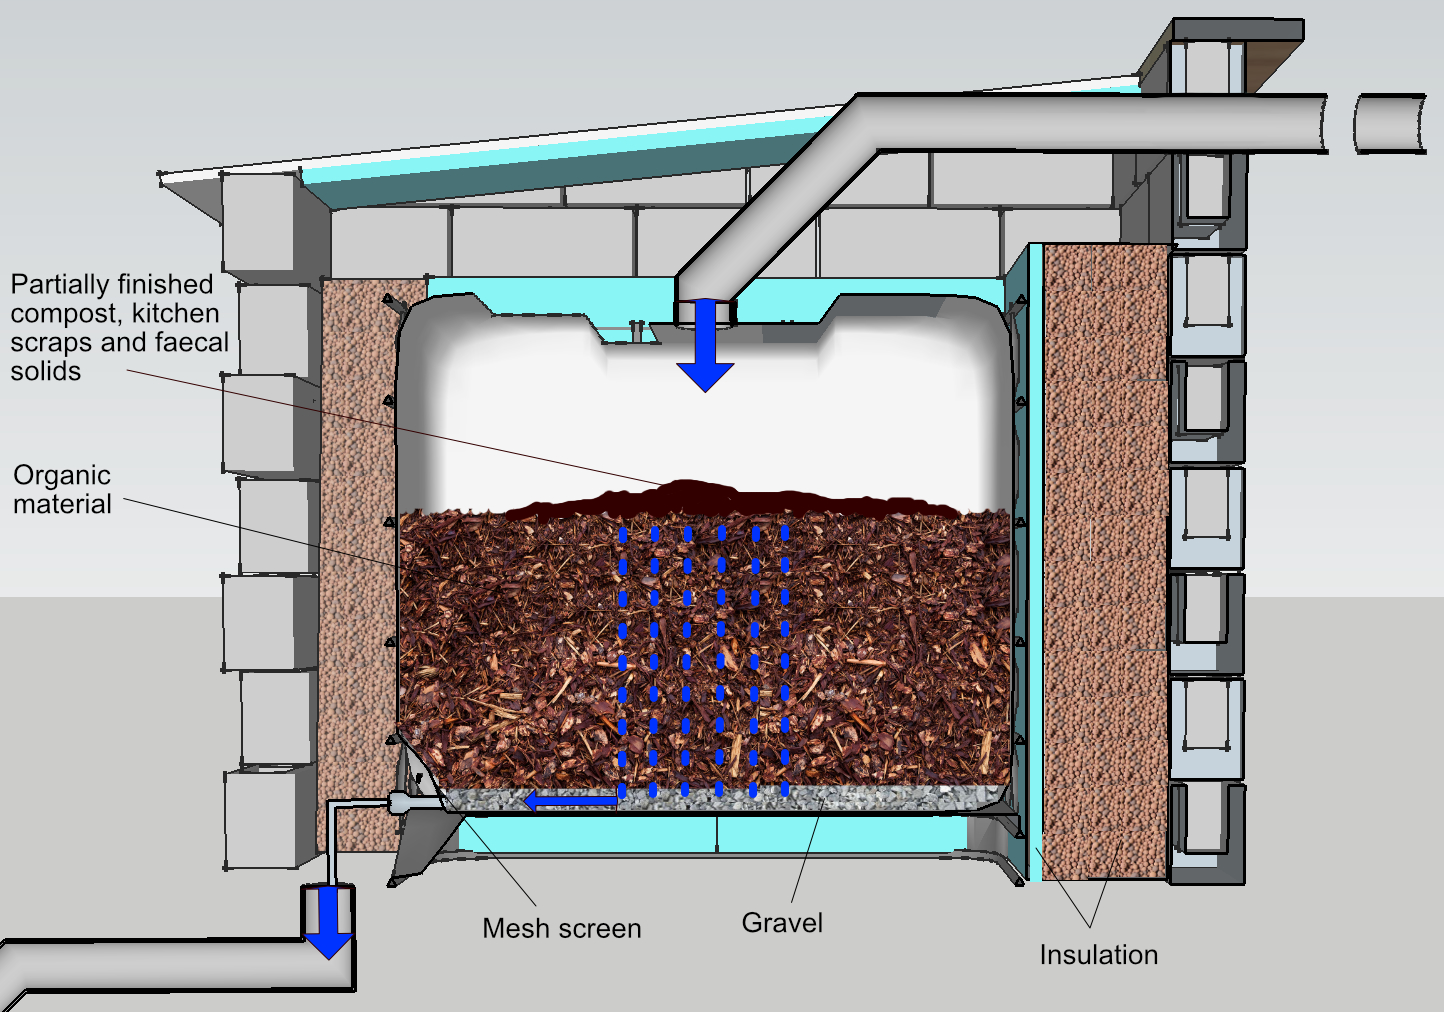 How a vermicomposting ecosystem system works